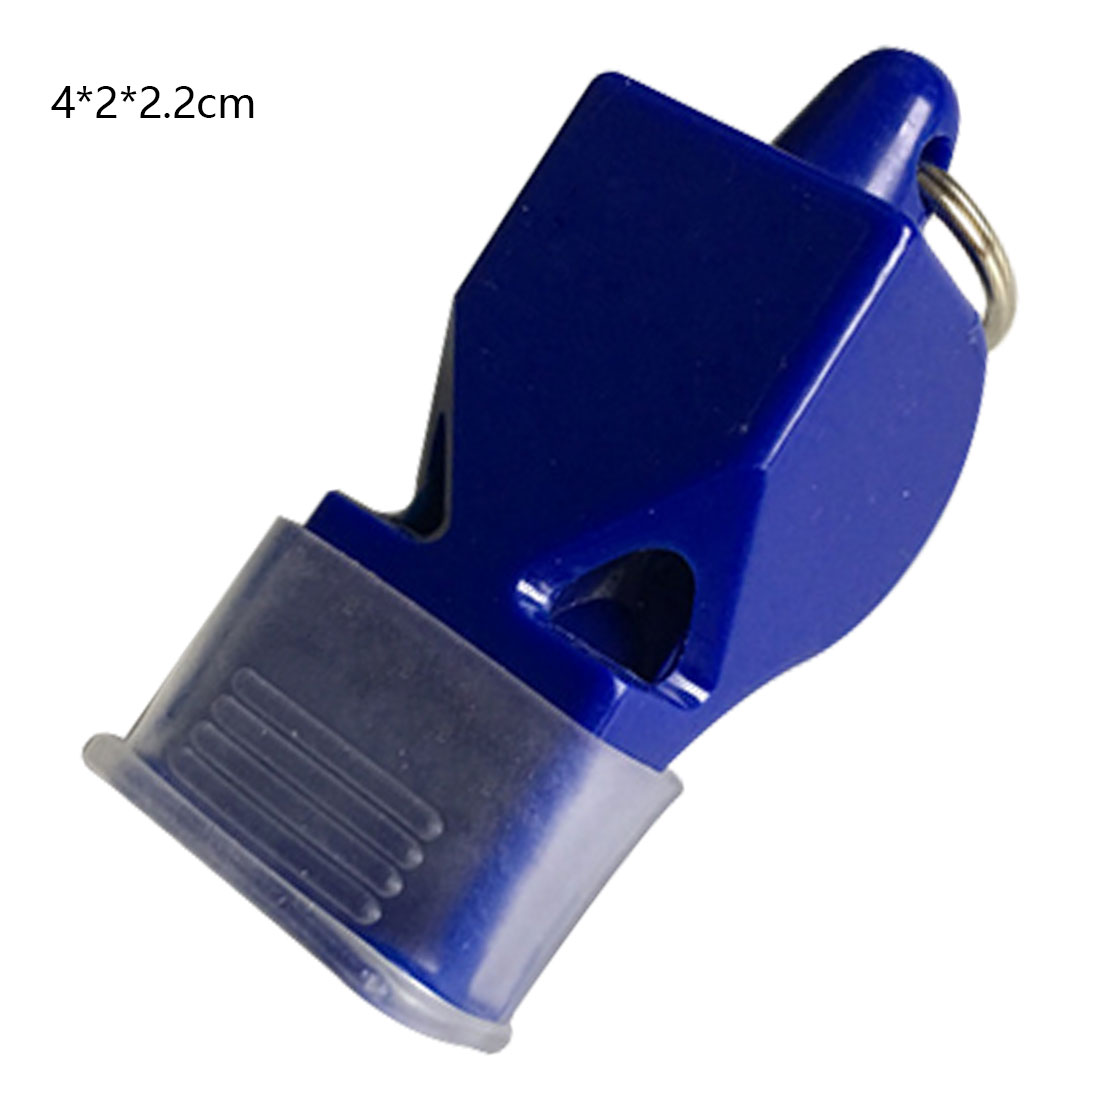 Professional Referee Whistle With Lanyard for Sports Camping Emergency Tools